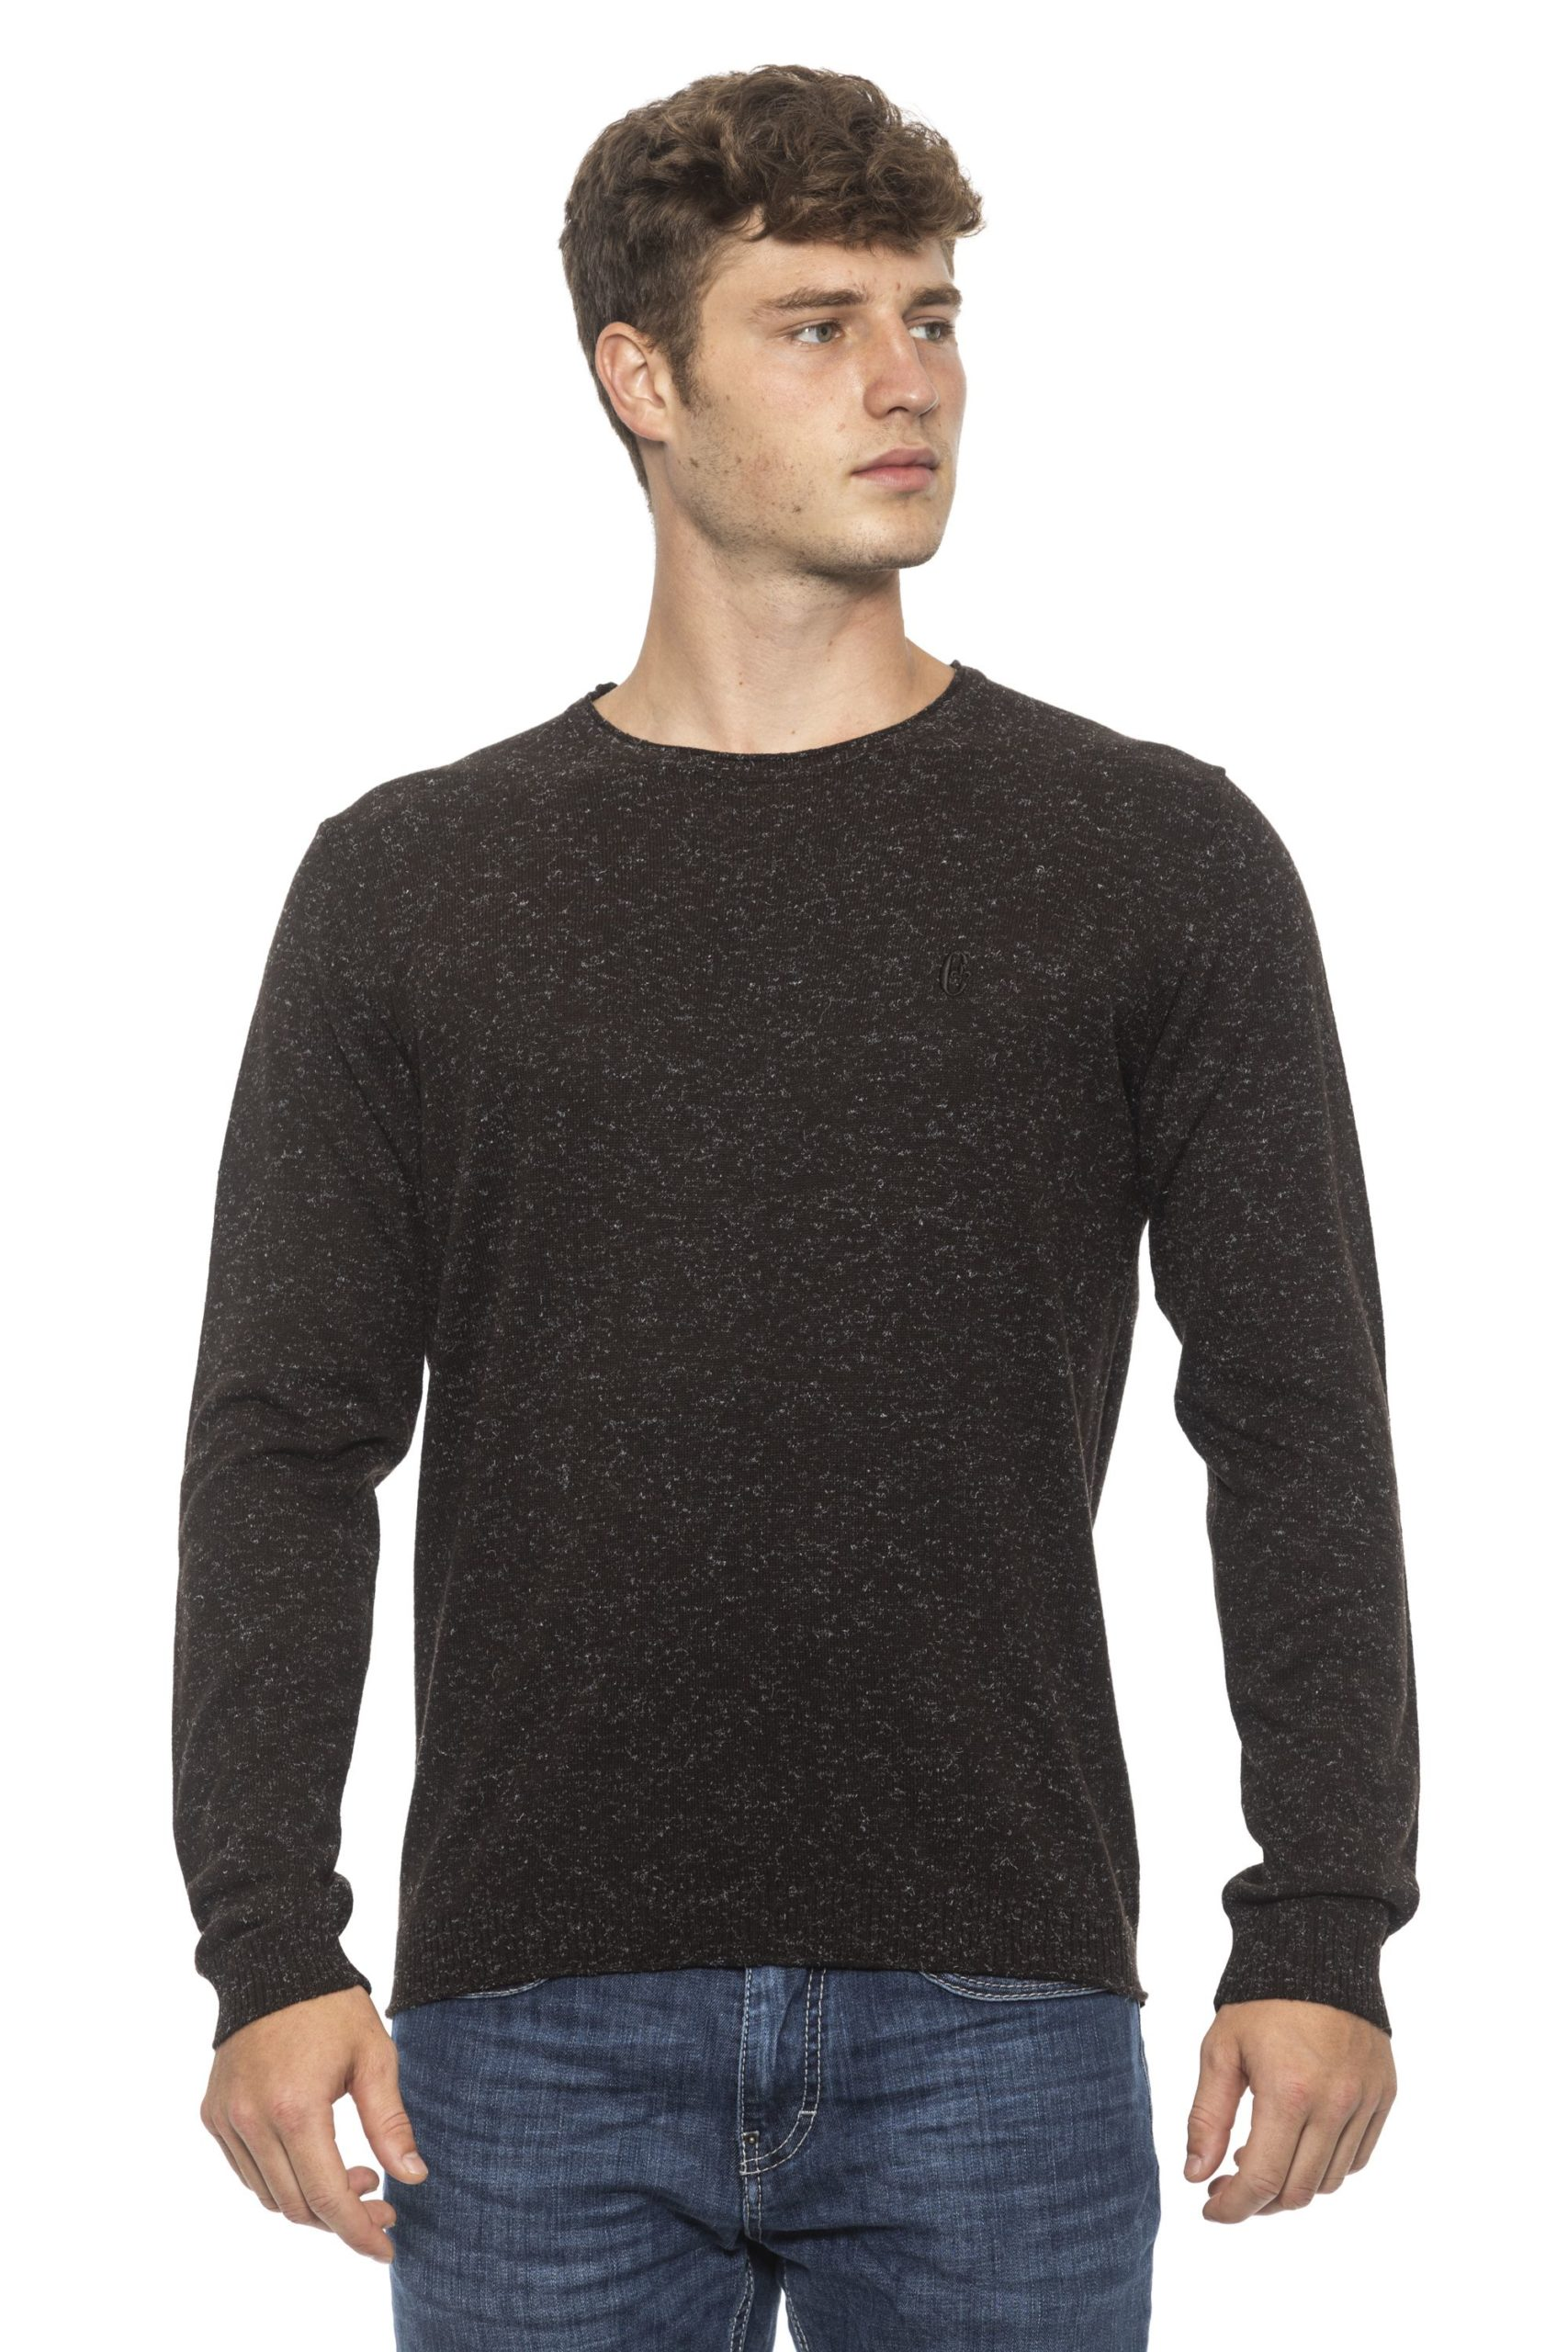 Conte of Florence Men's Sweater Brown CO1272746 - M